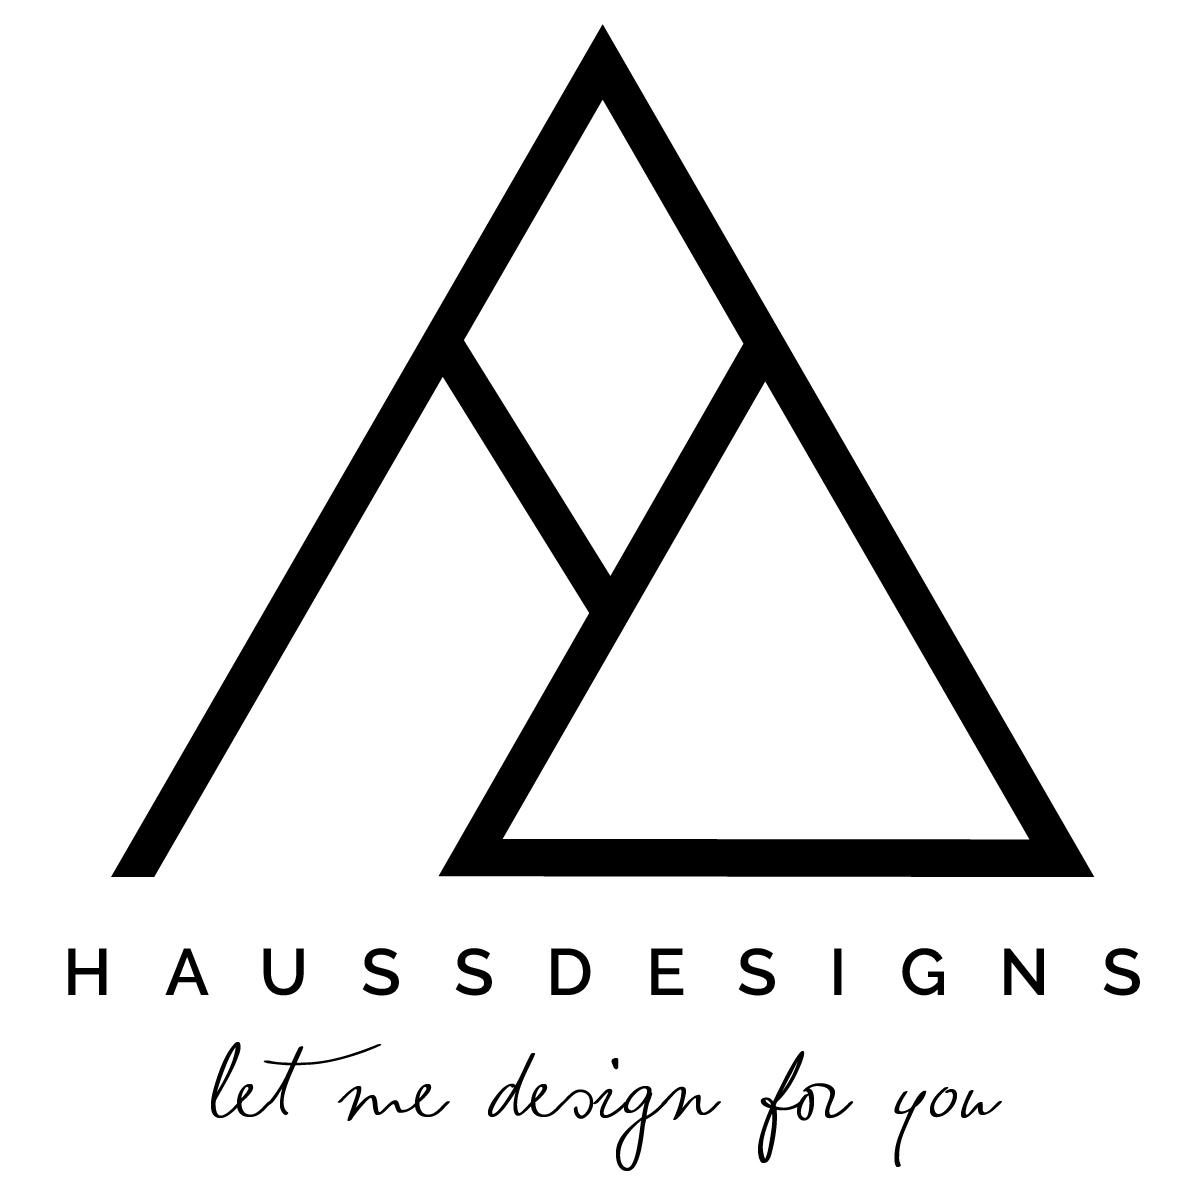 Hauss Designs